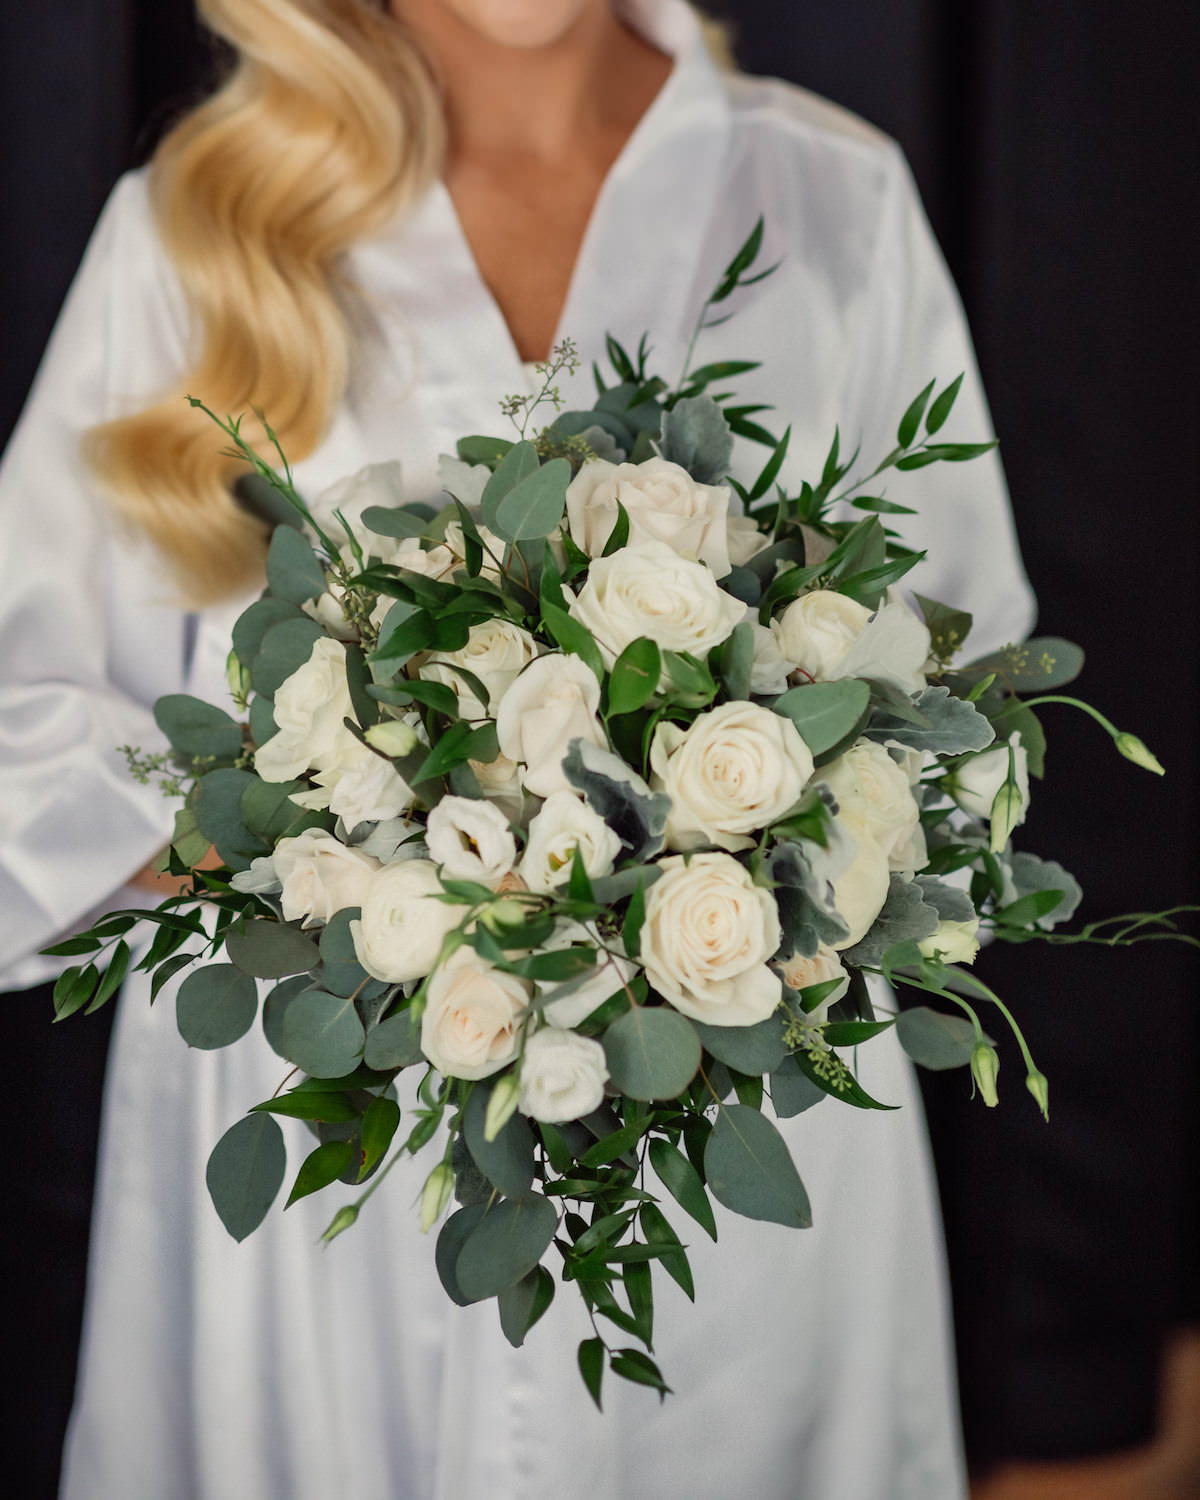 Wedding bouquet with white flowers and greenery - Photography: Charming Images